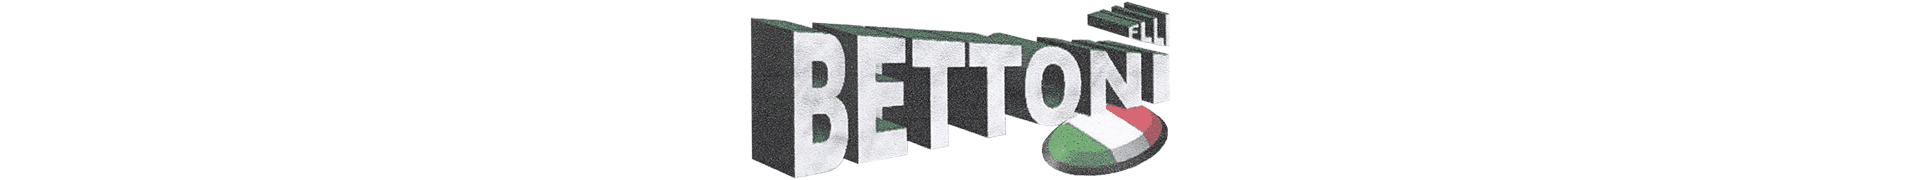 Bettoni utensili - Logo wide